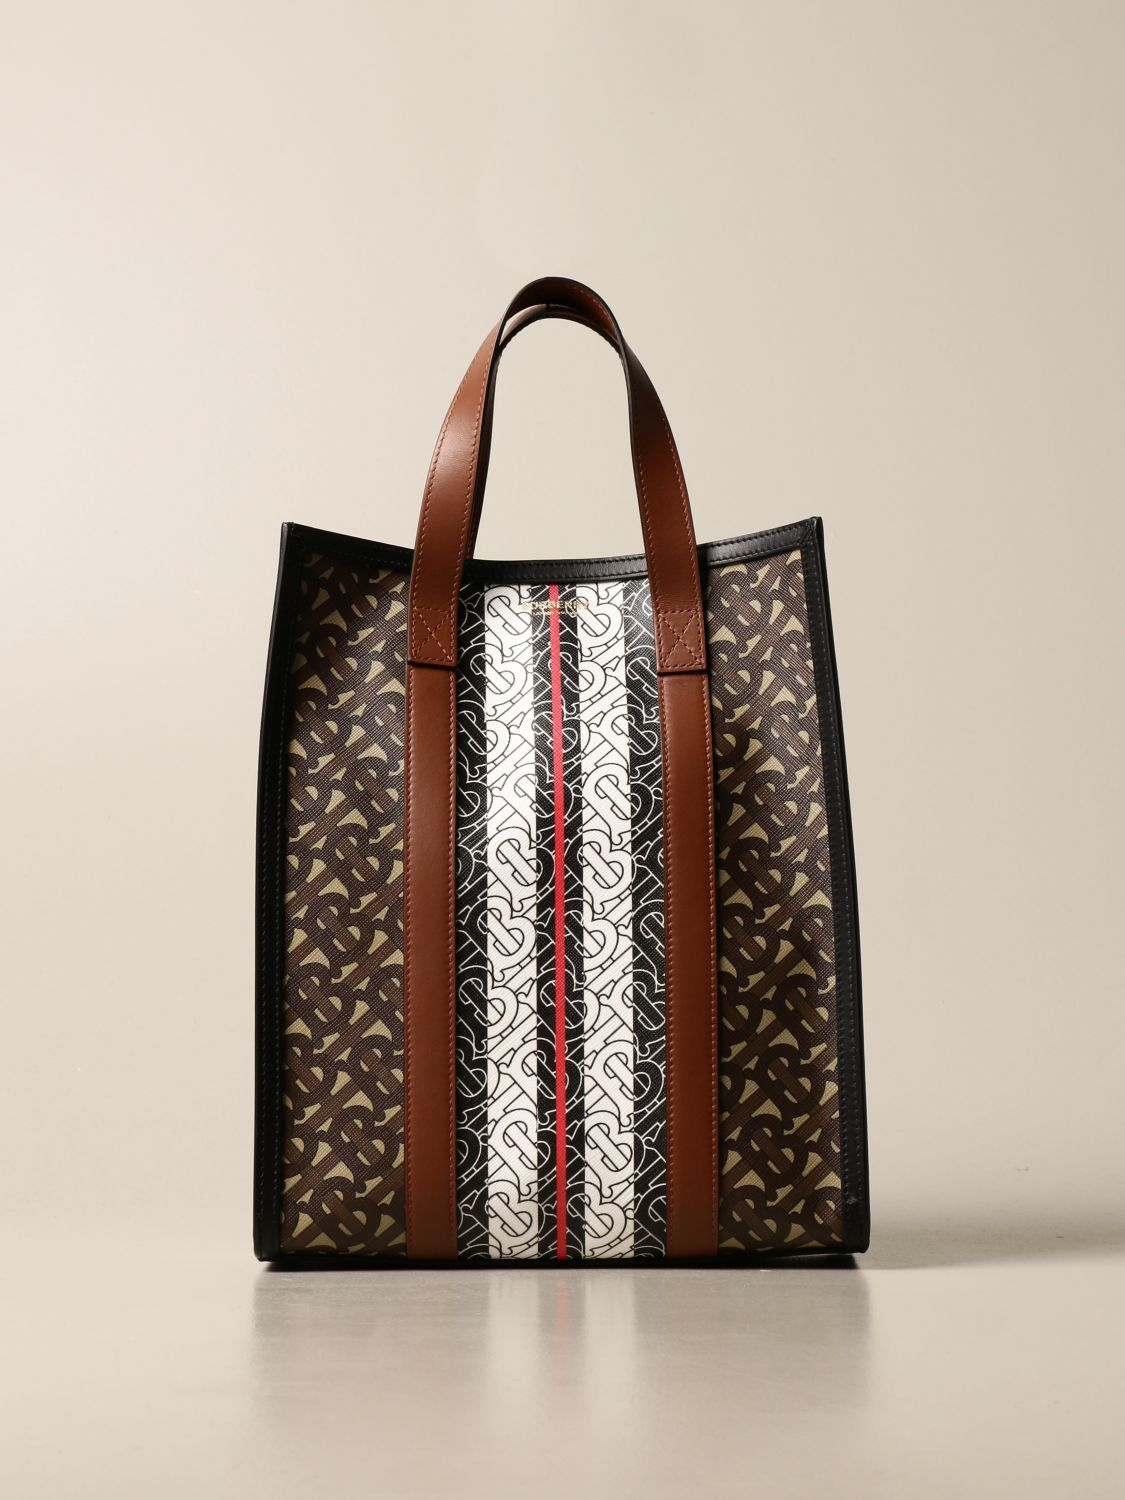 Tote Bags Burberry 8024294 Giglio Uk